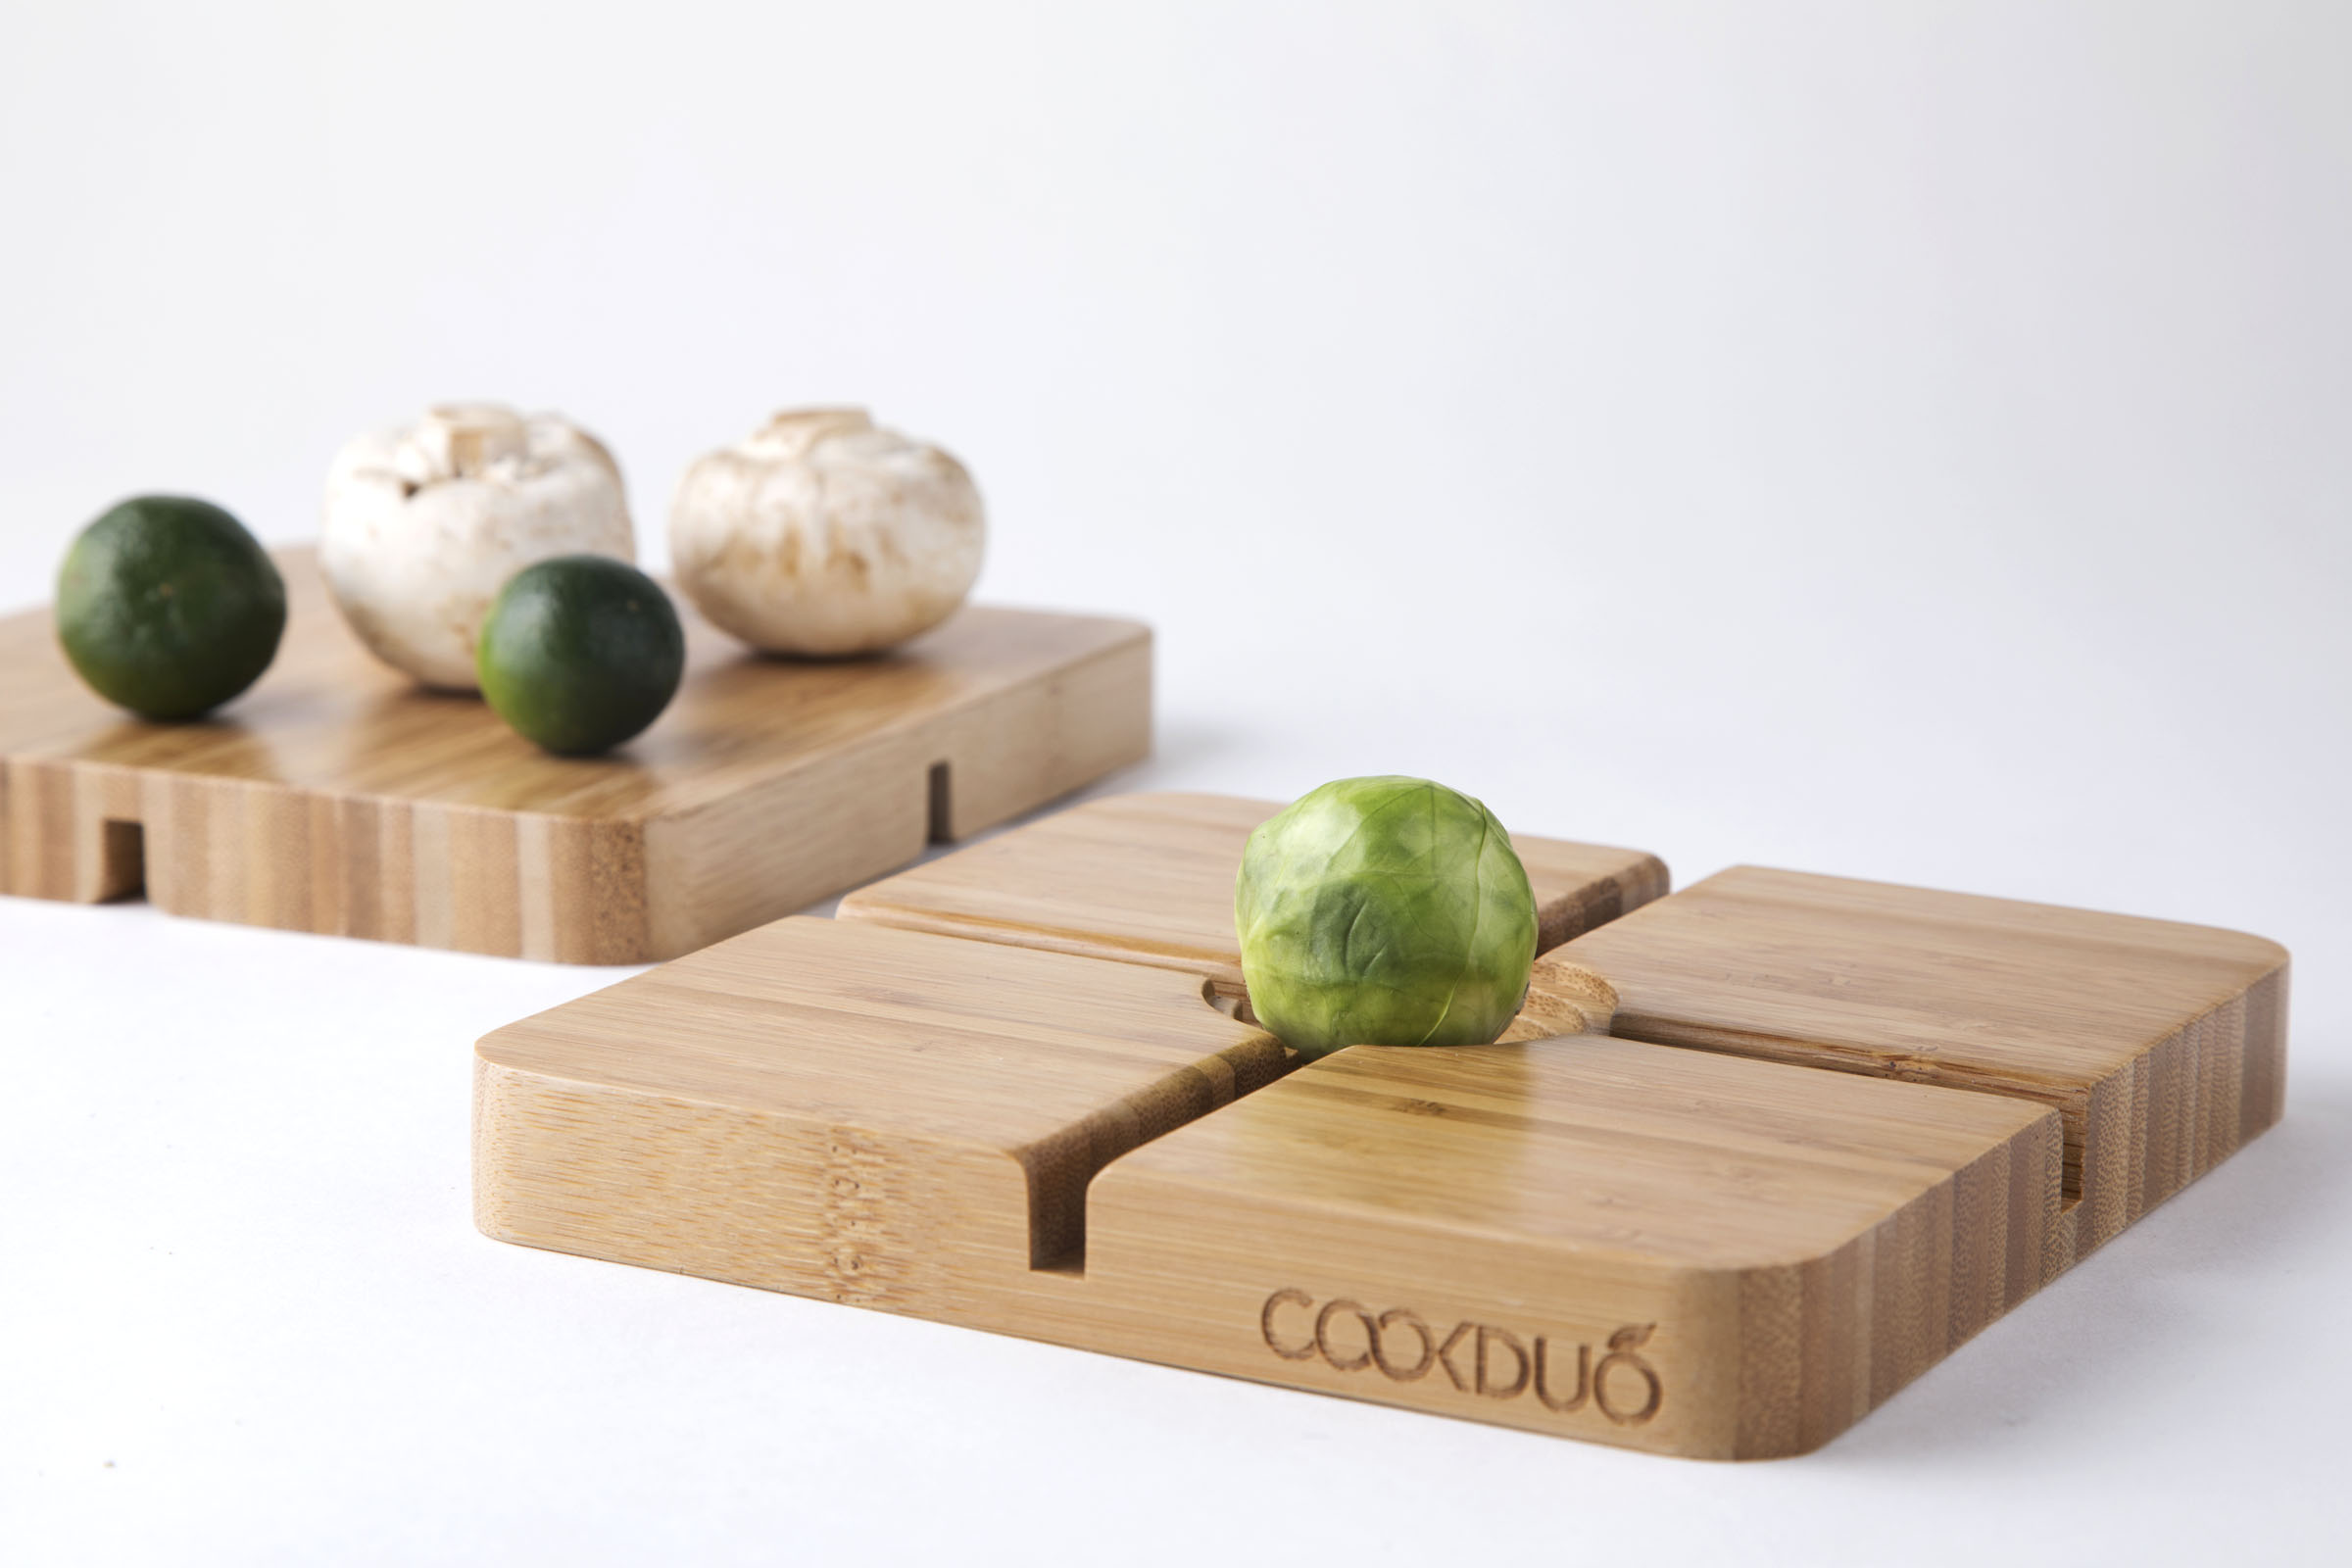 Veggie Gripper - Bamboo cutting board for small round vegetables and fruits (a.k.a. B.Sprout) designed by Madeline ProfioGreat for Brussels sprout, limes, strawberries, mushrooms, cherry tomatoes and much more.